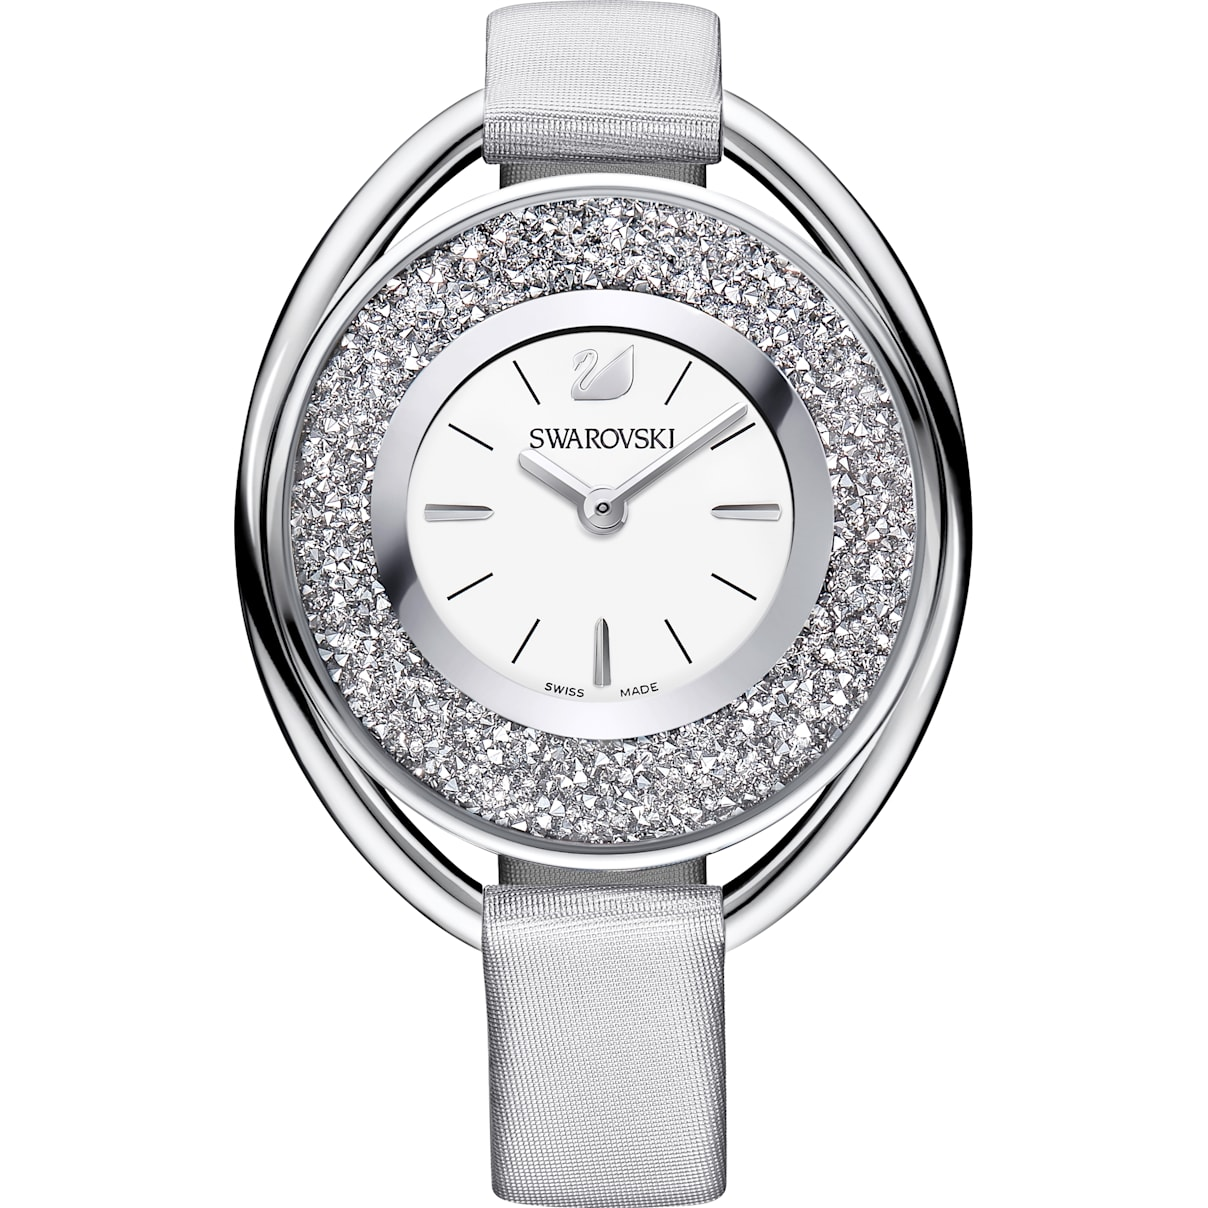 Swarovski Crystalline Oval Watch, Fabric strap, Gray, Silver tone